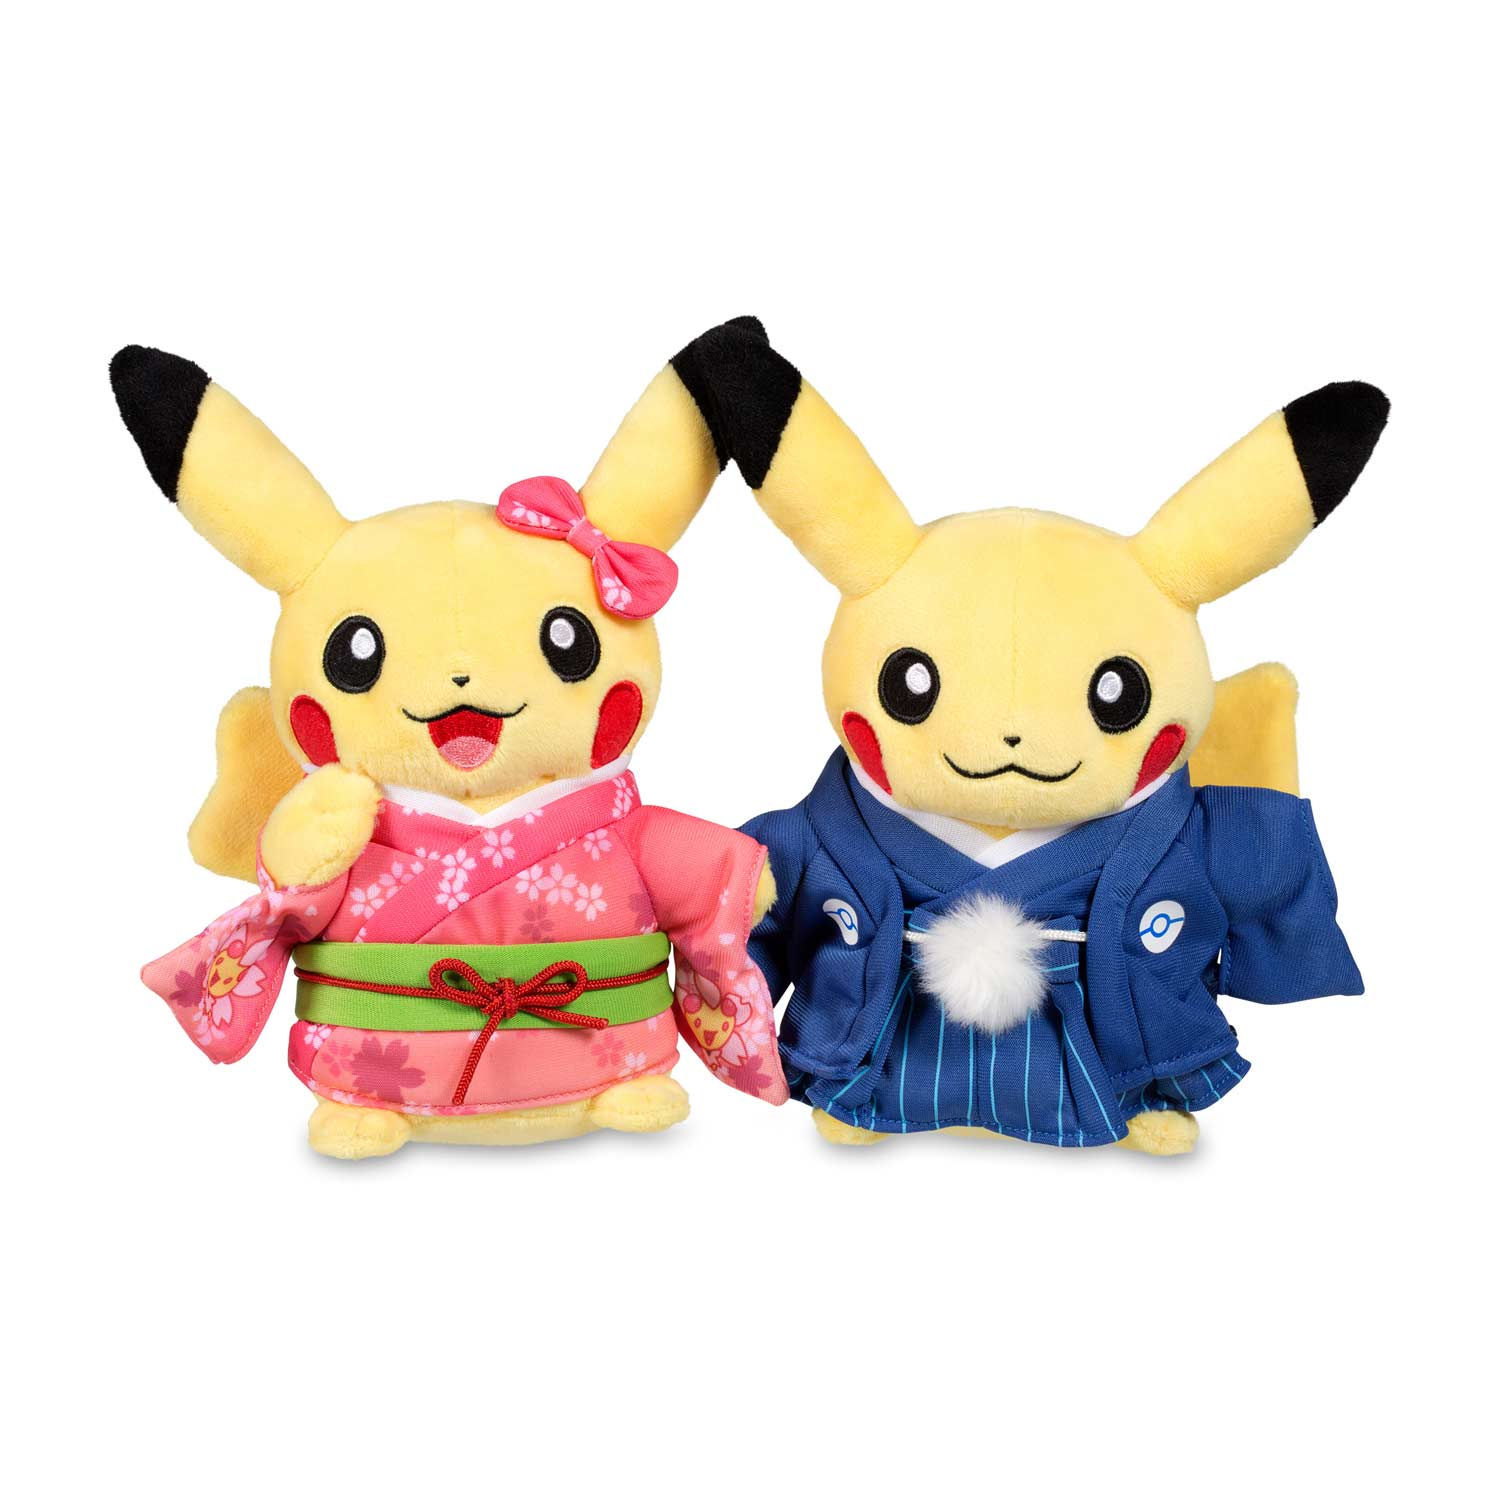 3fb9cb45 Image for Paired Pikachu Celebrations: New Year Kimono Pikachu (Standard) -  8 In